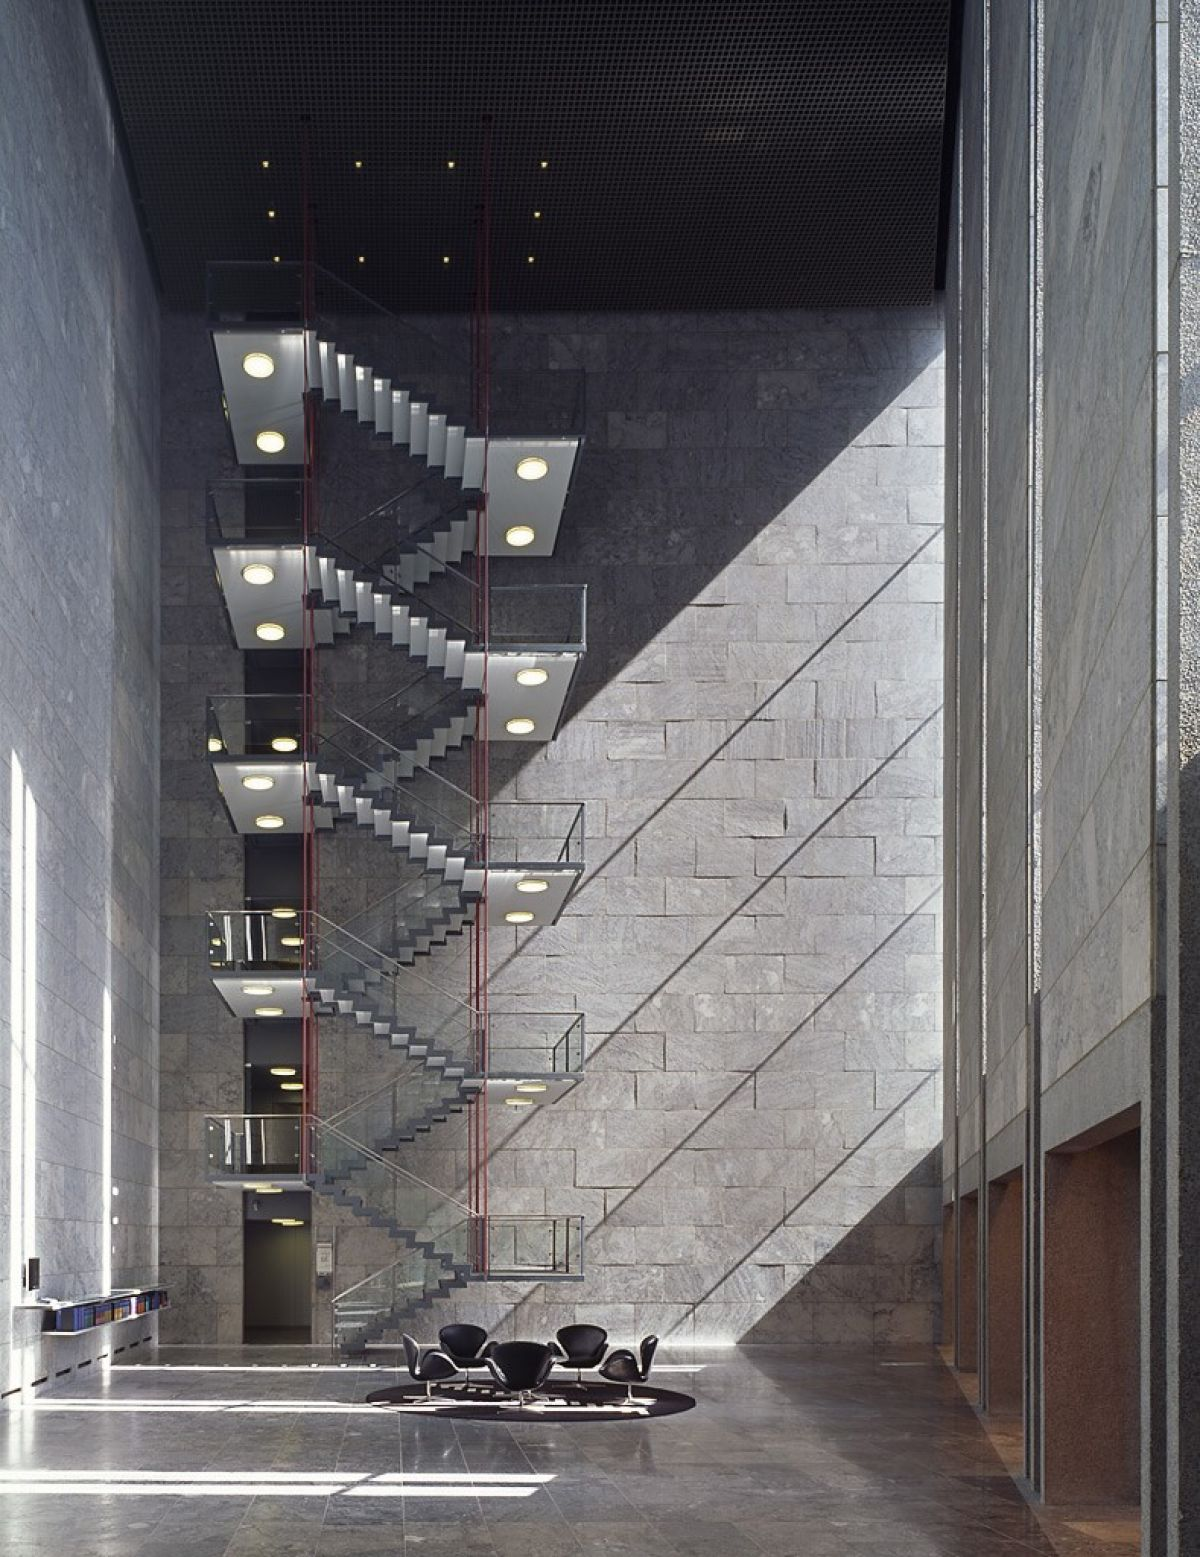 Staircase of the National Bank of Denmark, designed by Arne Jacobsen, in the middle of Copenhagen, between 1966 and 1978. Image courtesy of National Bank of Denmark